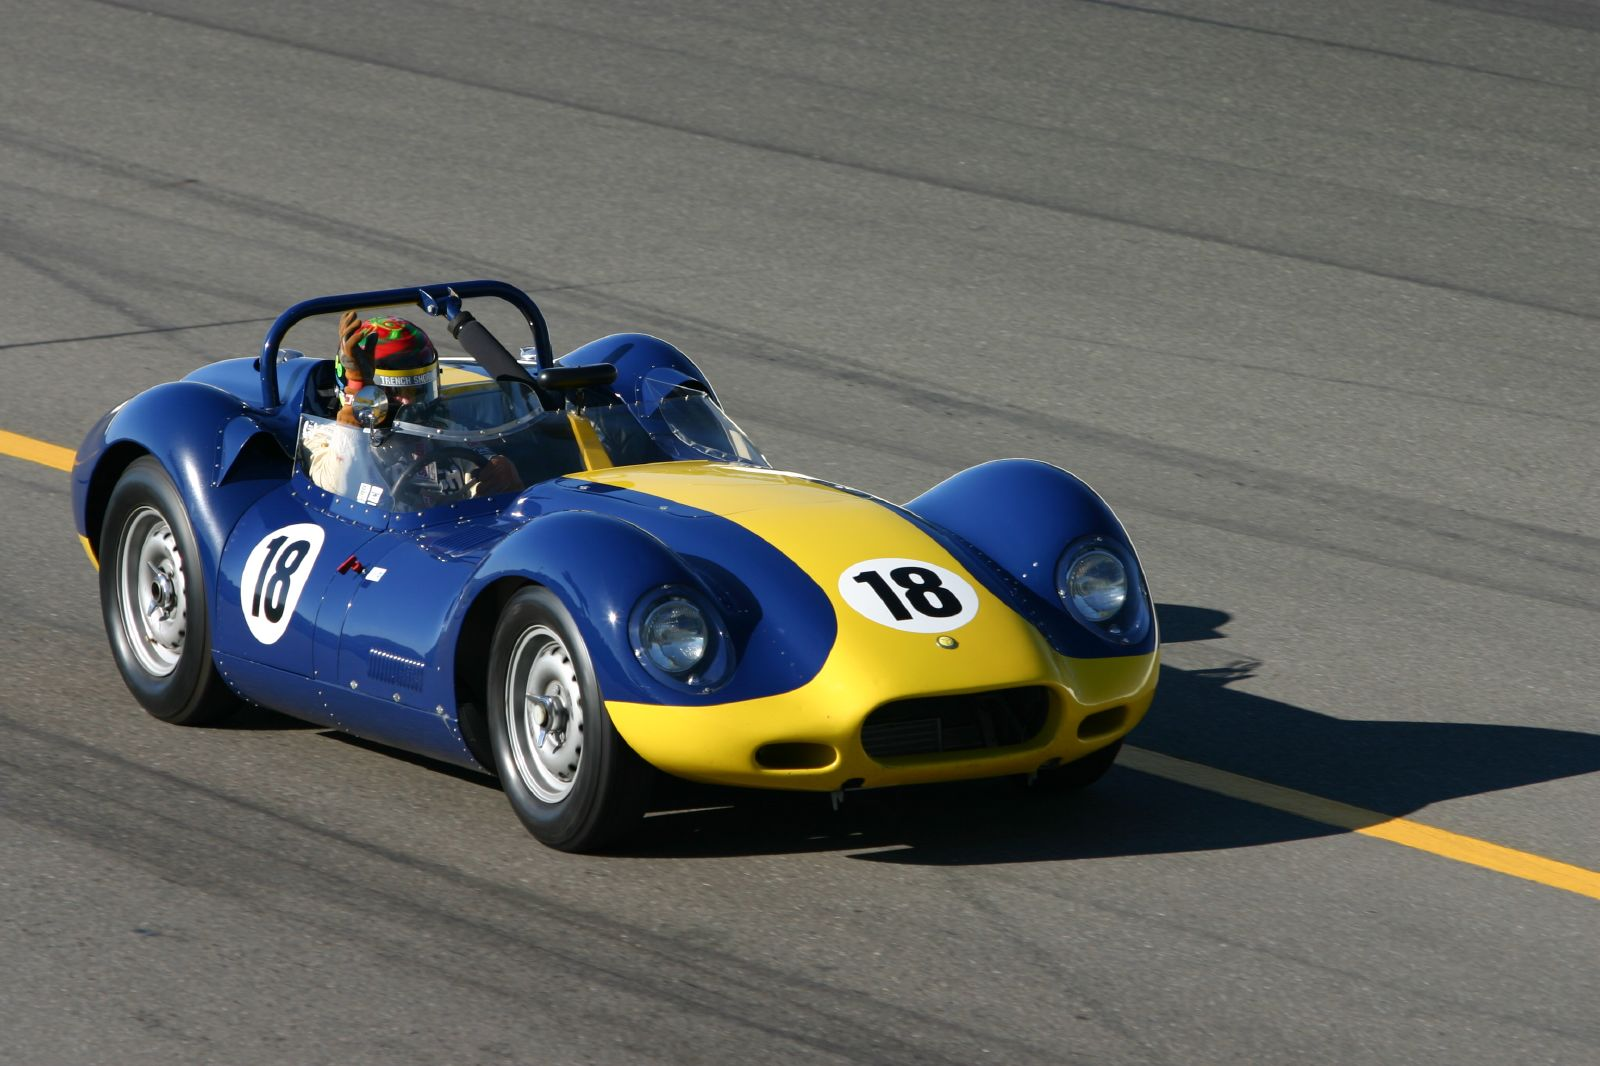 Lister jaguar photo - 4